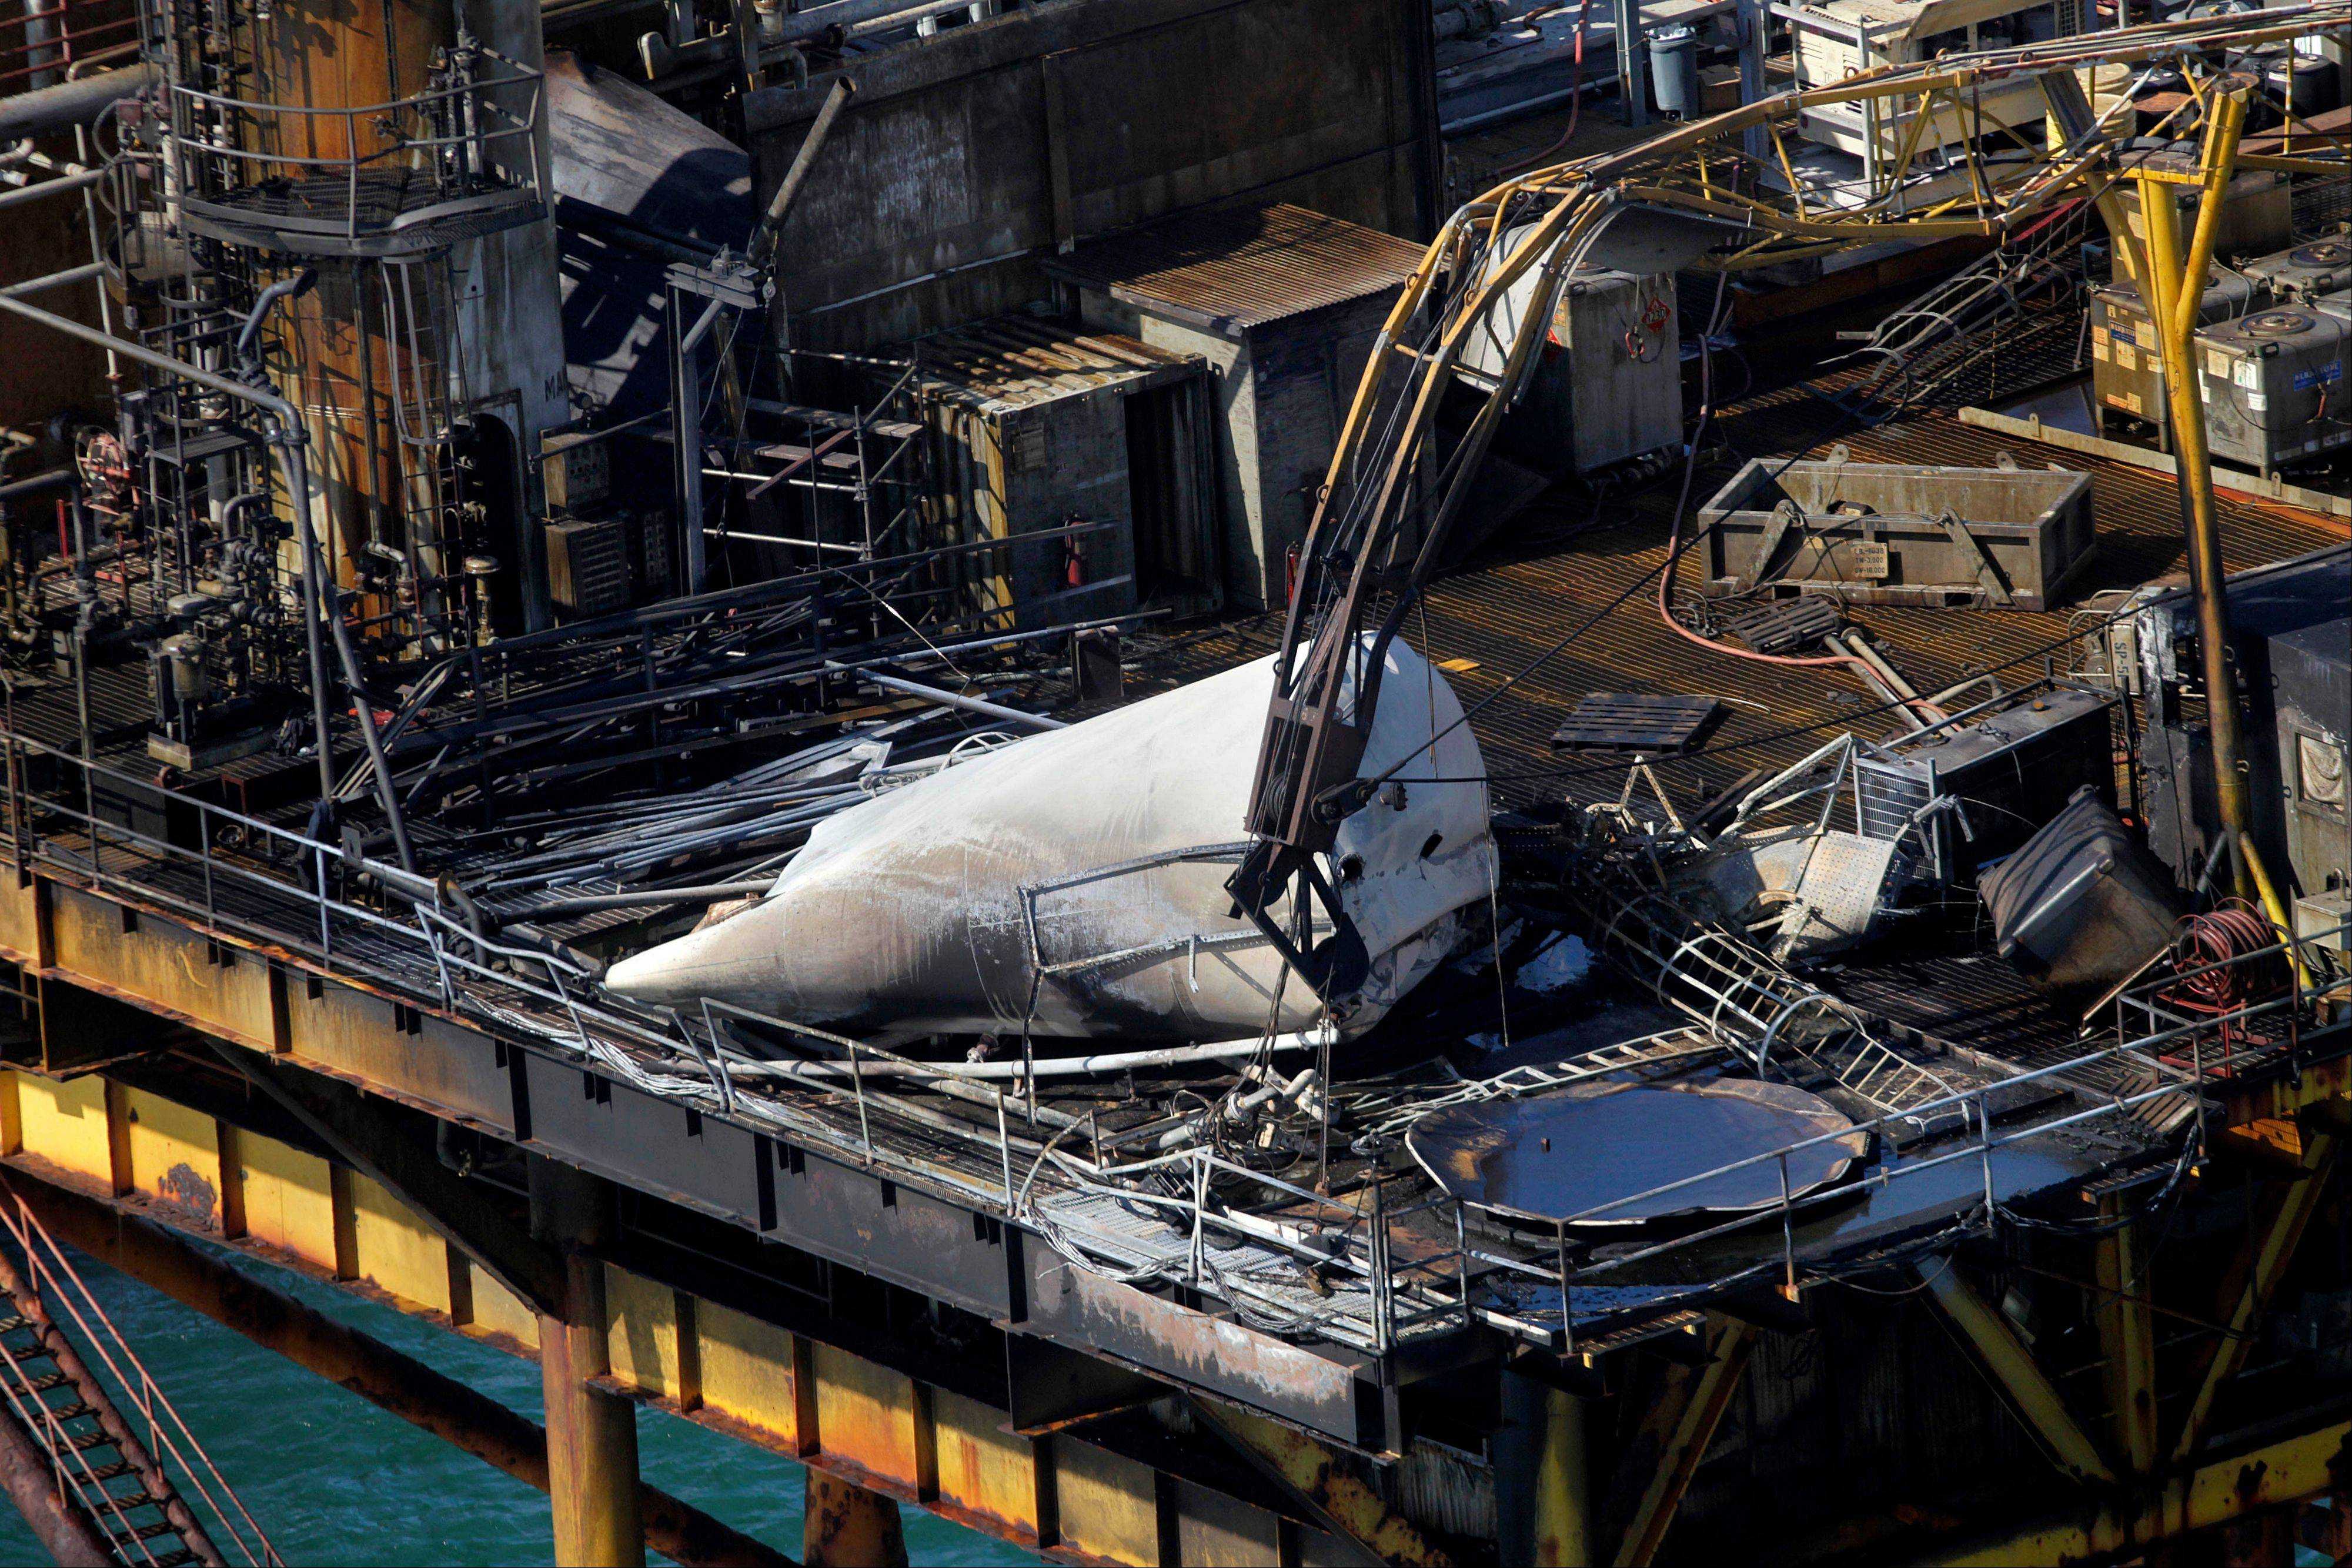 This aerial photograph shows damage from an explosion and fire on an oil rig in the Gulf of Mexico, about 25 miles southeast of Grand Isle, La., Friday.